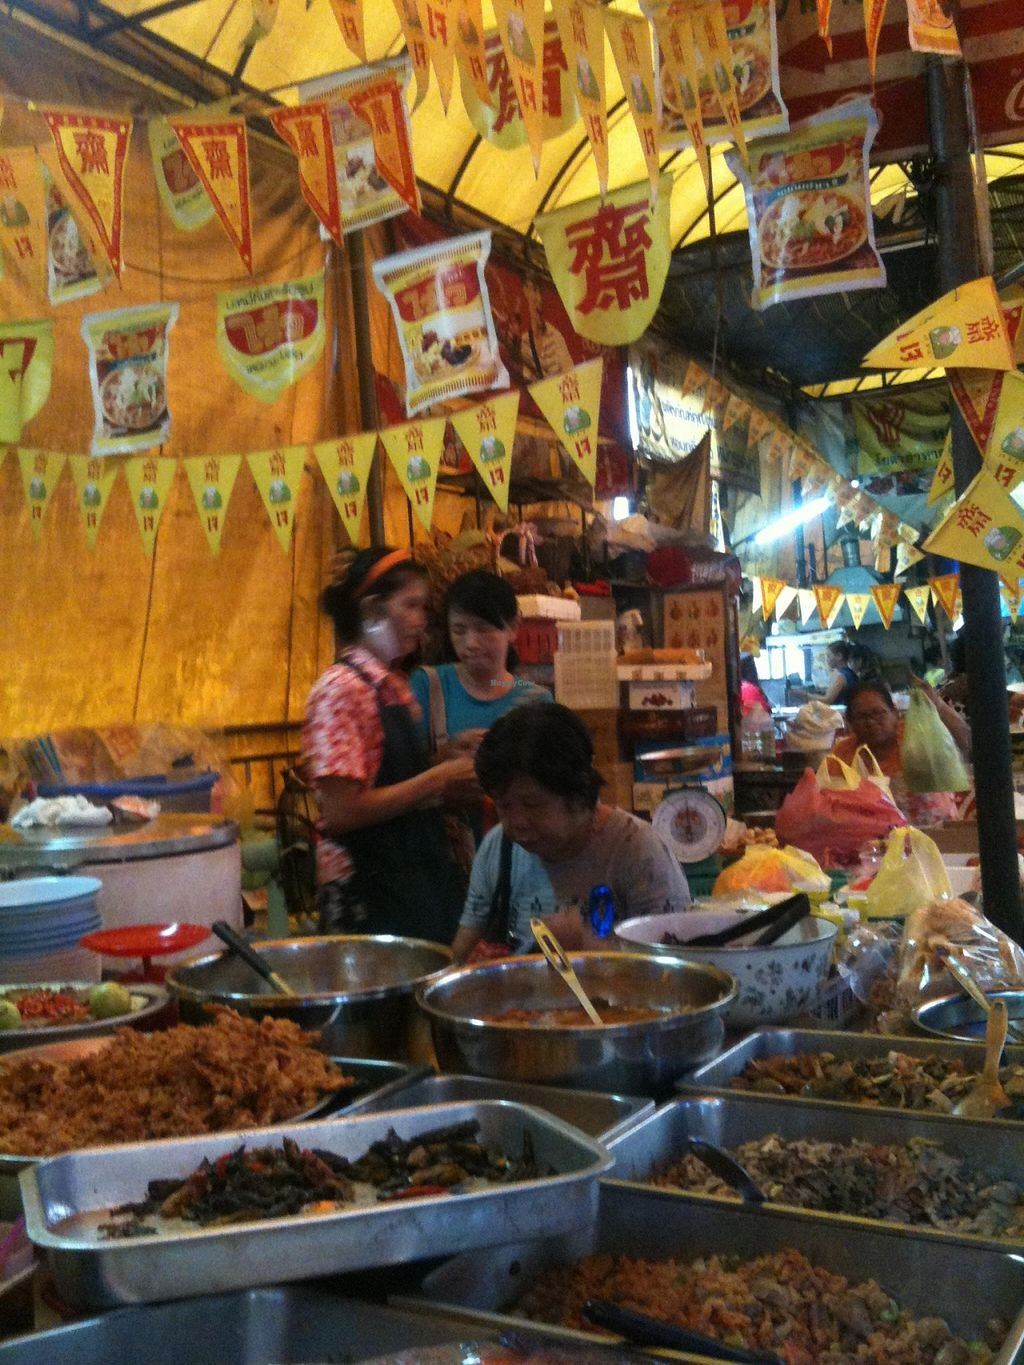 """Photo of Vegan Thai Food Stalls  by <a href=""""/members/profile/CaluCalu"""">CaluCalu</a> <br/>Food stall <br/> January 24, 2016  - <a href='/contact/abuse/image/35874/133513'>Report</a>"""